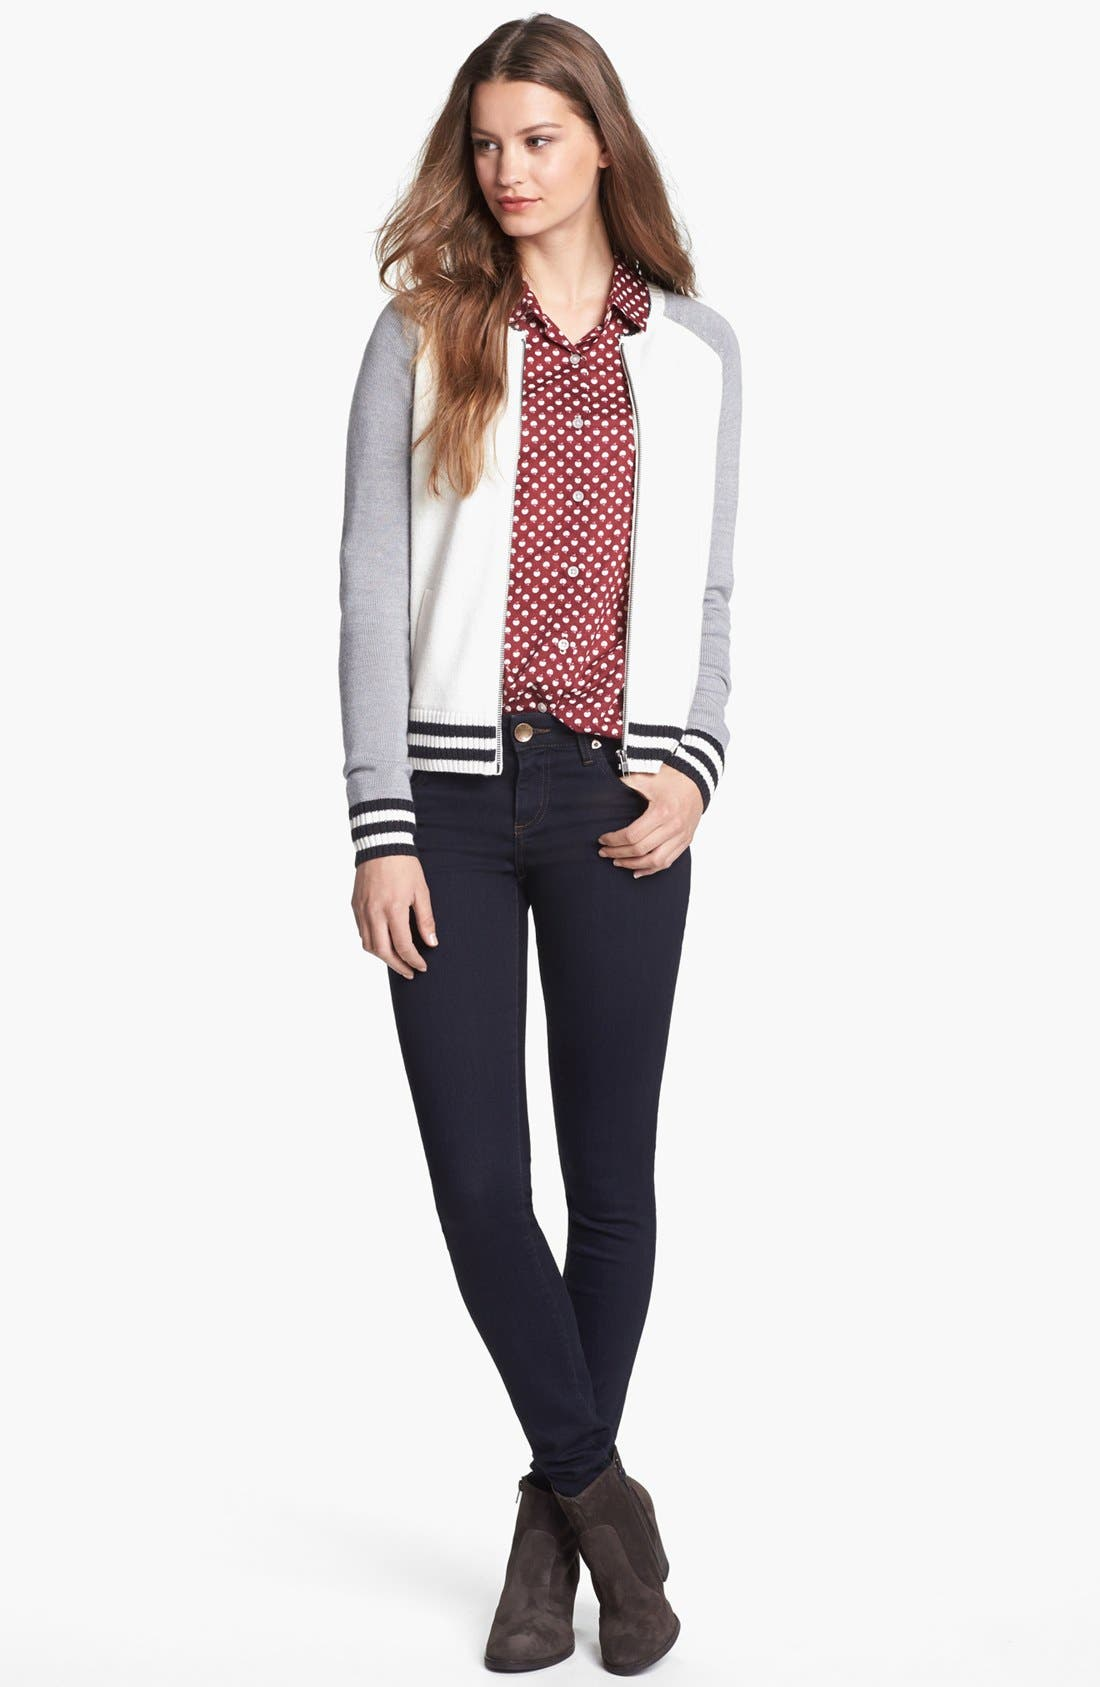 Alternate Image 1 Selected - Halogen® Cardigan, Shirt & KUT from the Kloth Jeans